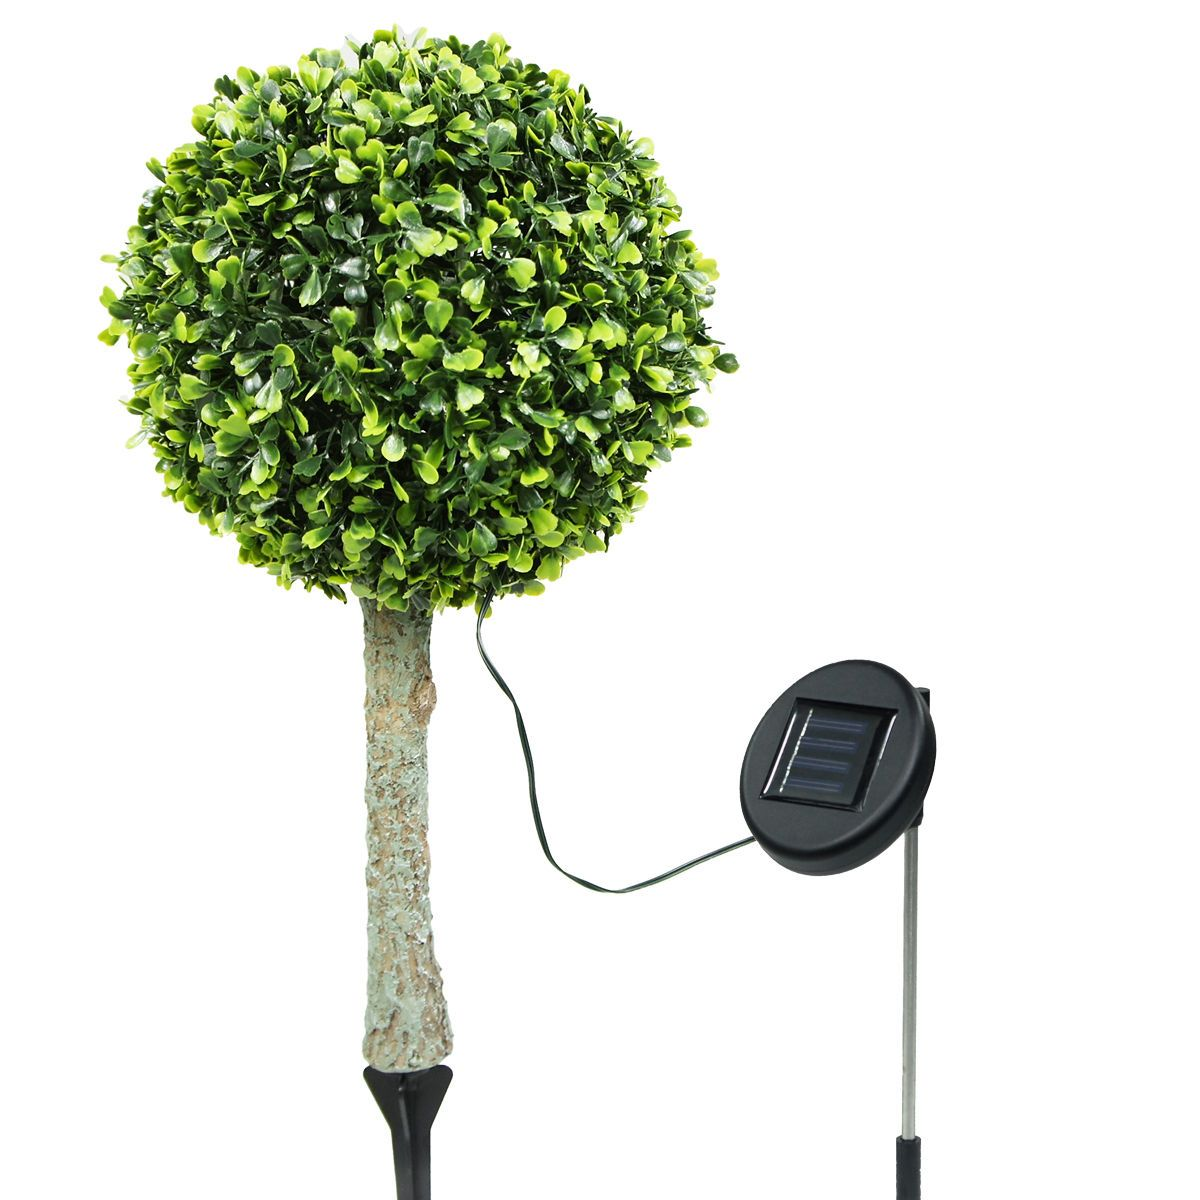 2 outdoor garden 30 led solar topiary tree bush landscape path light 2 outdoor garden 30 led solar topiary tree bush landscape path light yard lamp aloadofball Choice Image